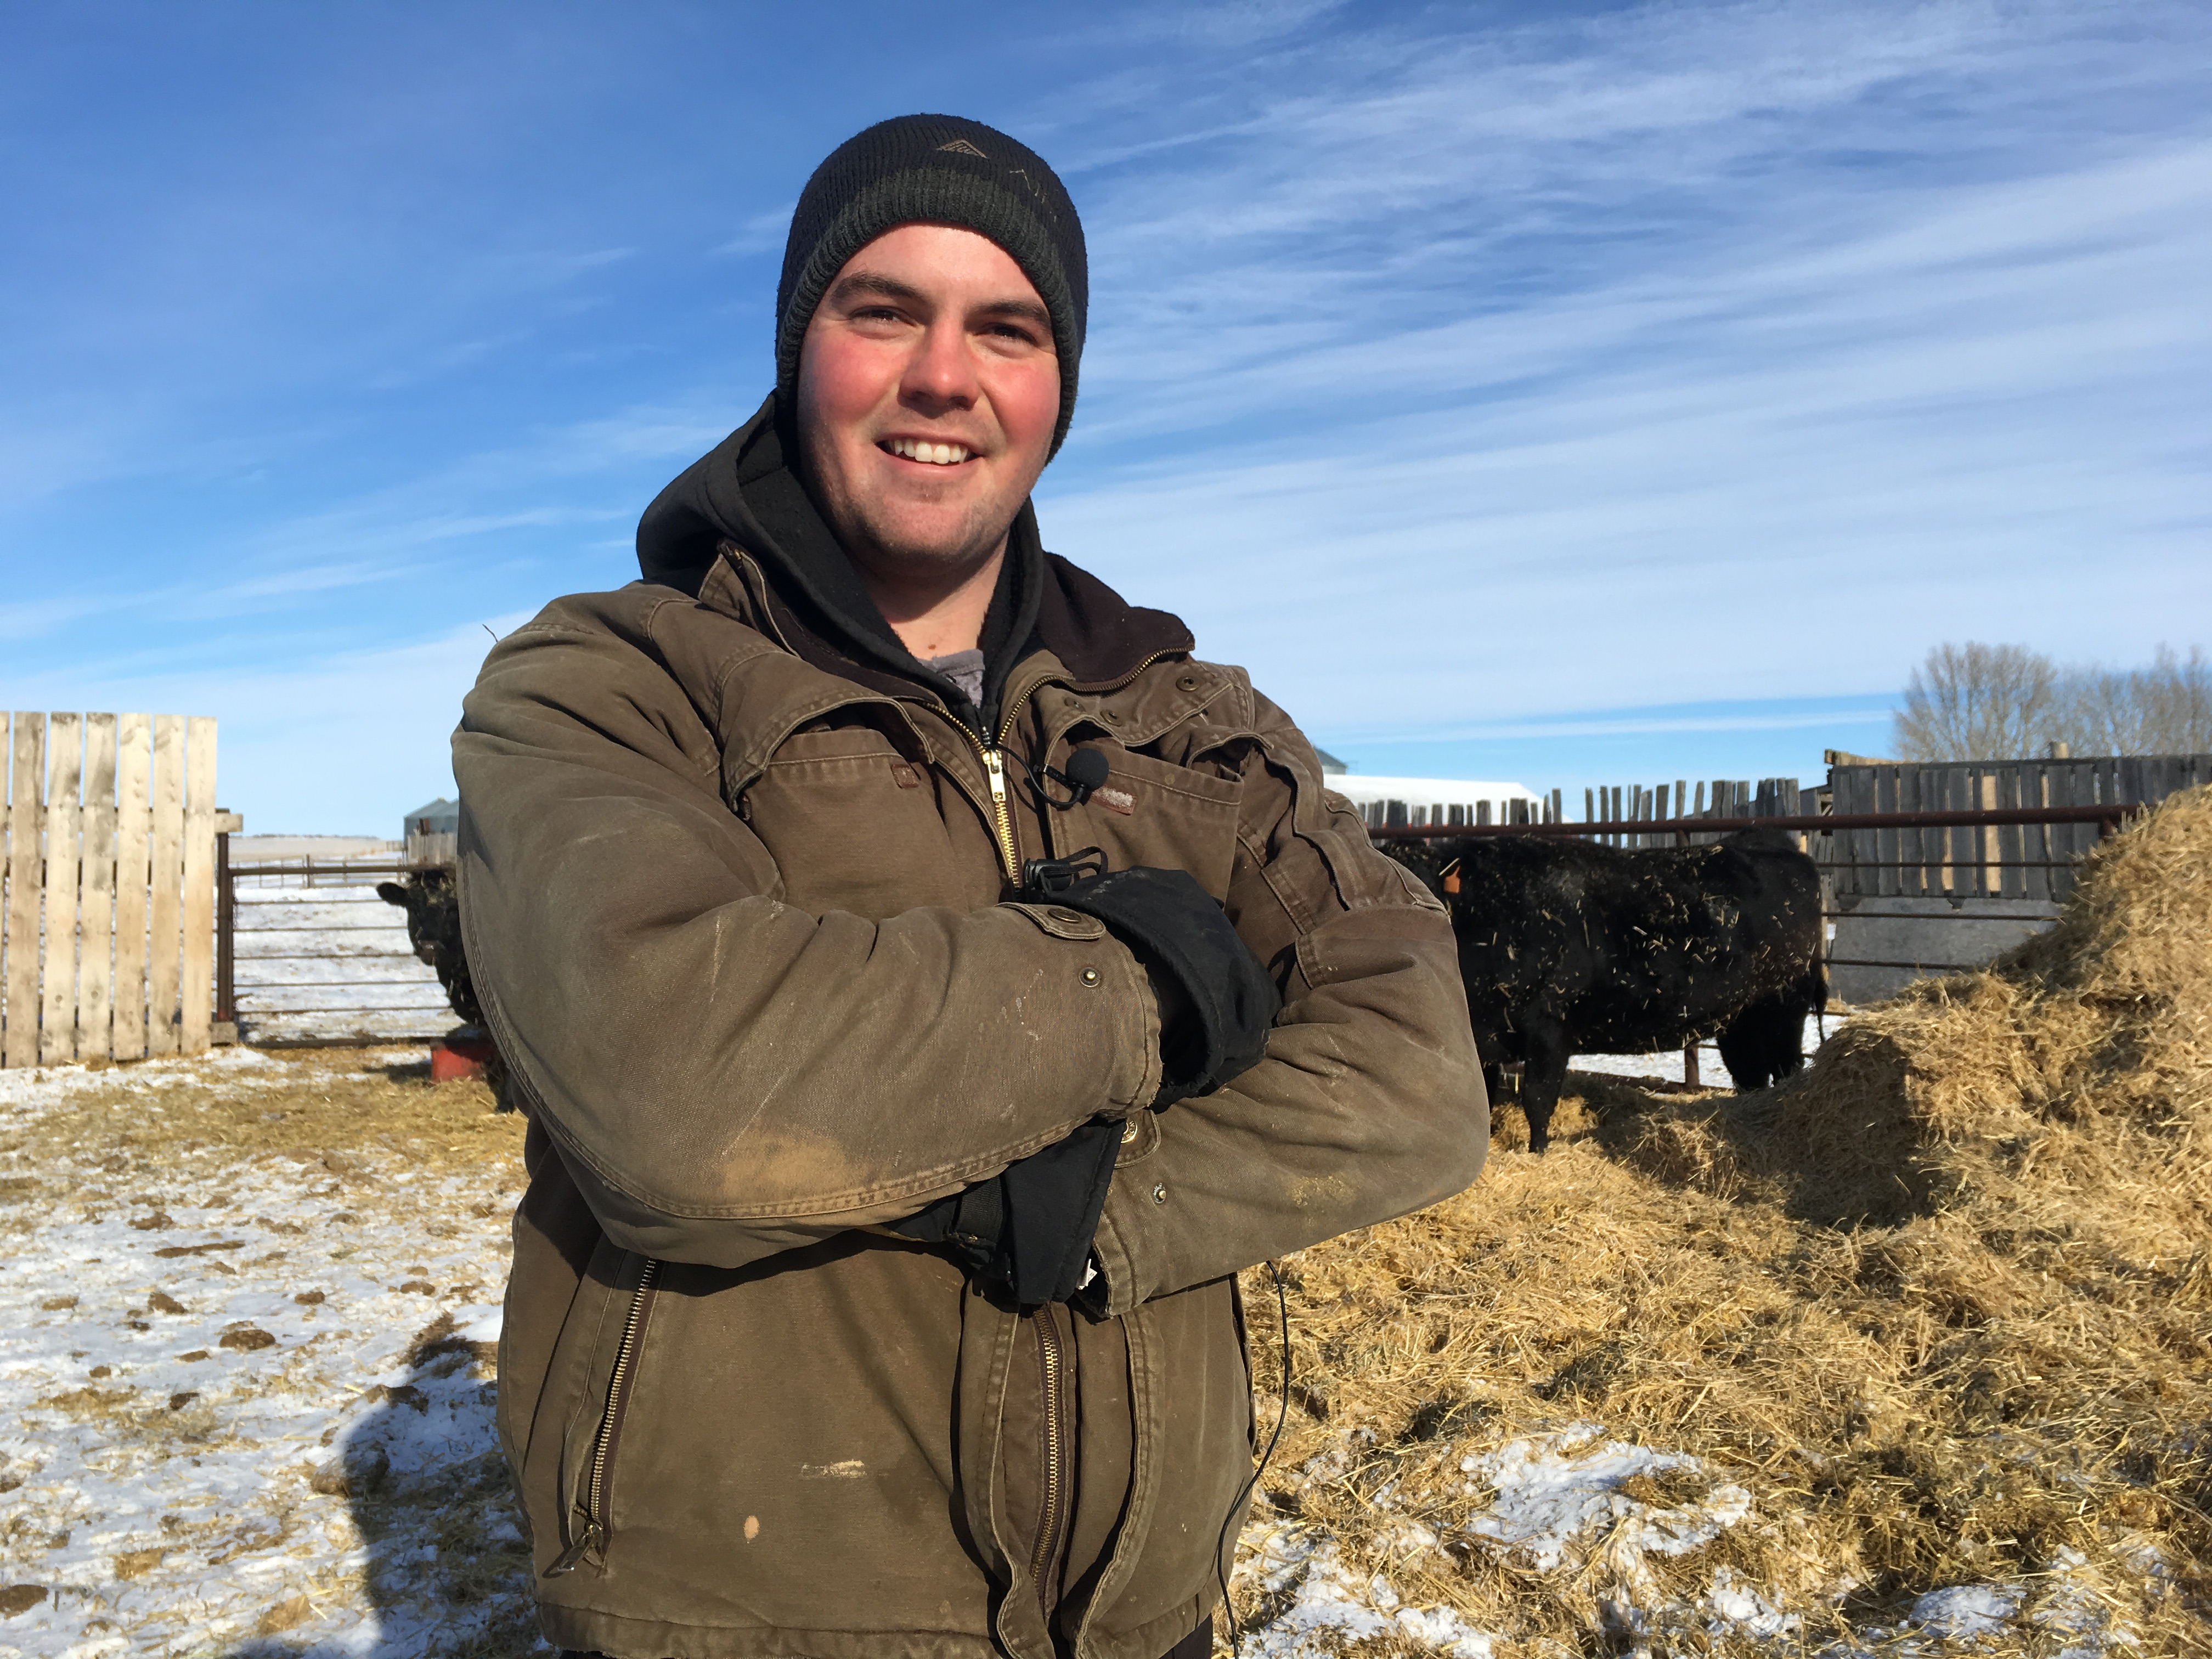 Ian Crosbie poses with his cattle on his Caronport farm